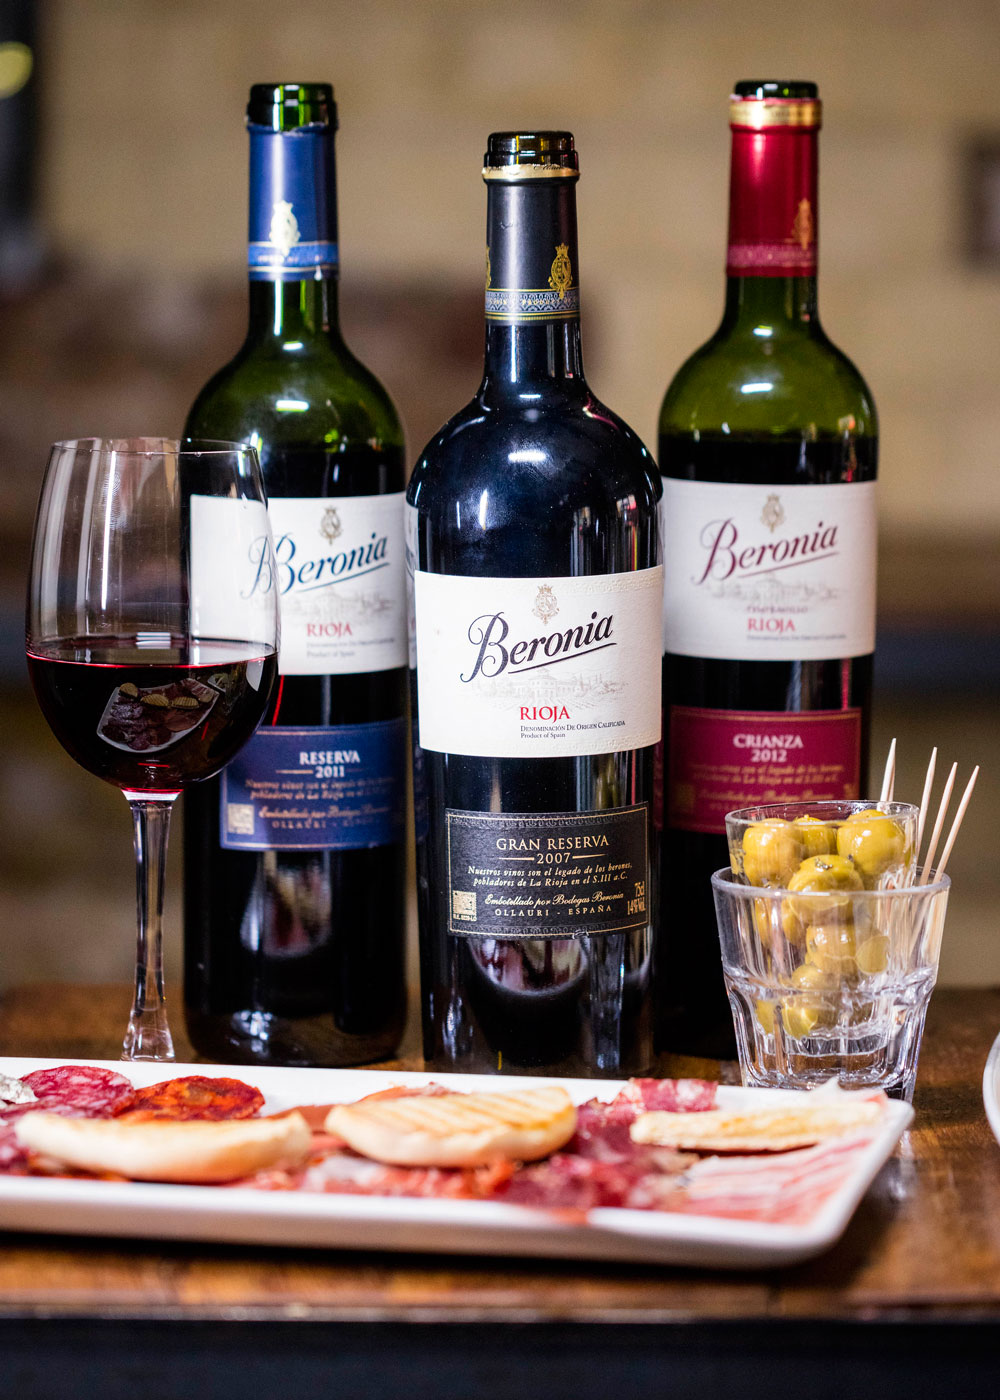 Beronia wine bottles on table with tapas sliced meats